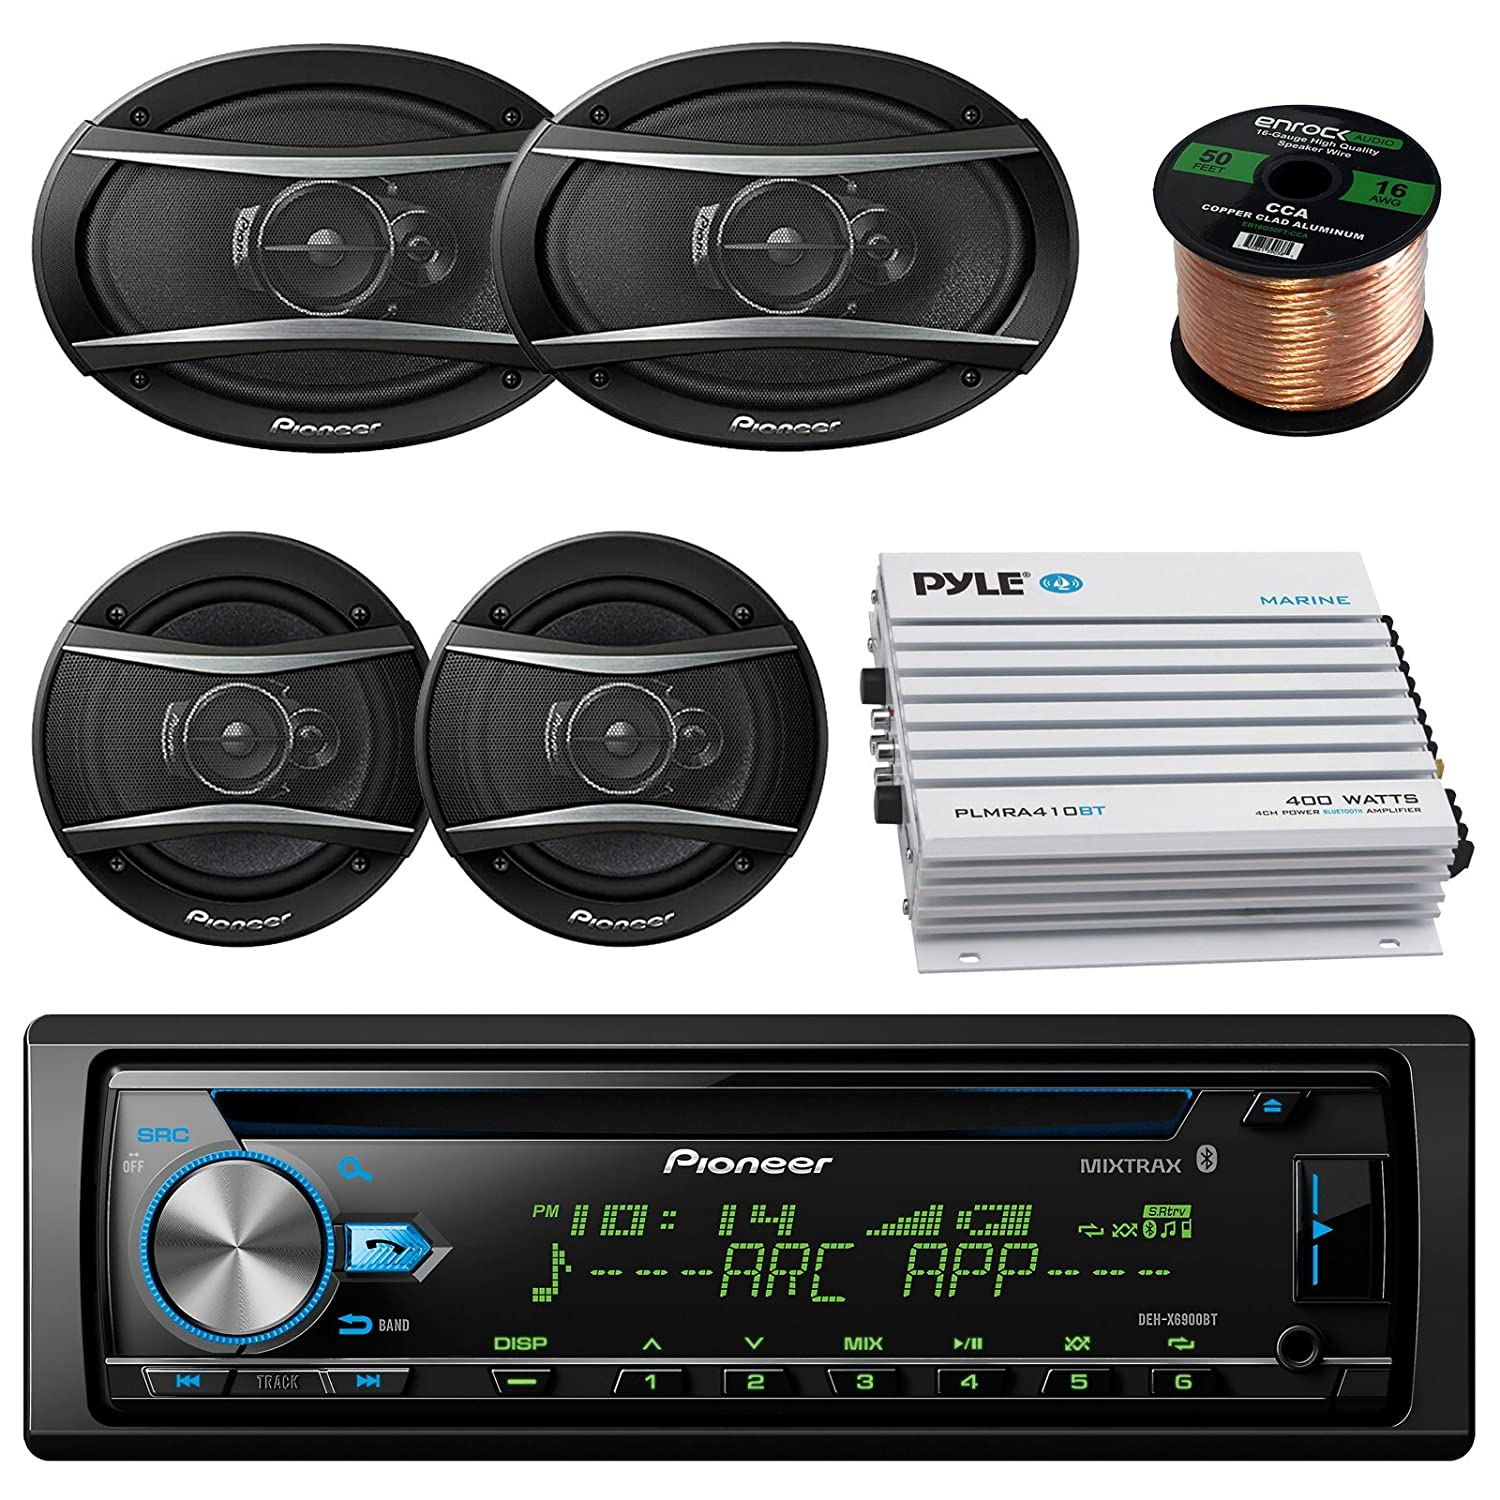 Low Cost Pioneer Dehx 6900bt Car Cd Mp3 Stereo Player With Bluetooth Amplifier Dual Handlebar Mount Weatherproof Speakers W Fm Radio Am Bundle 2 X 6x9 Inch 65 400 Watt Audio Amp Complete